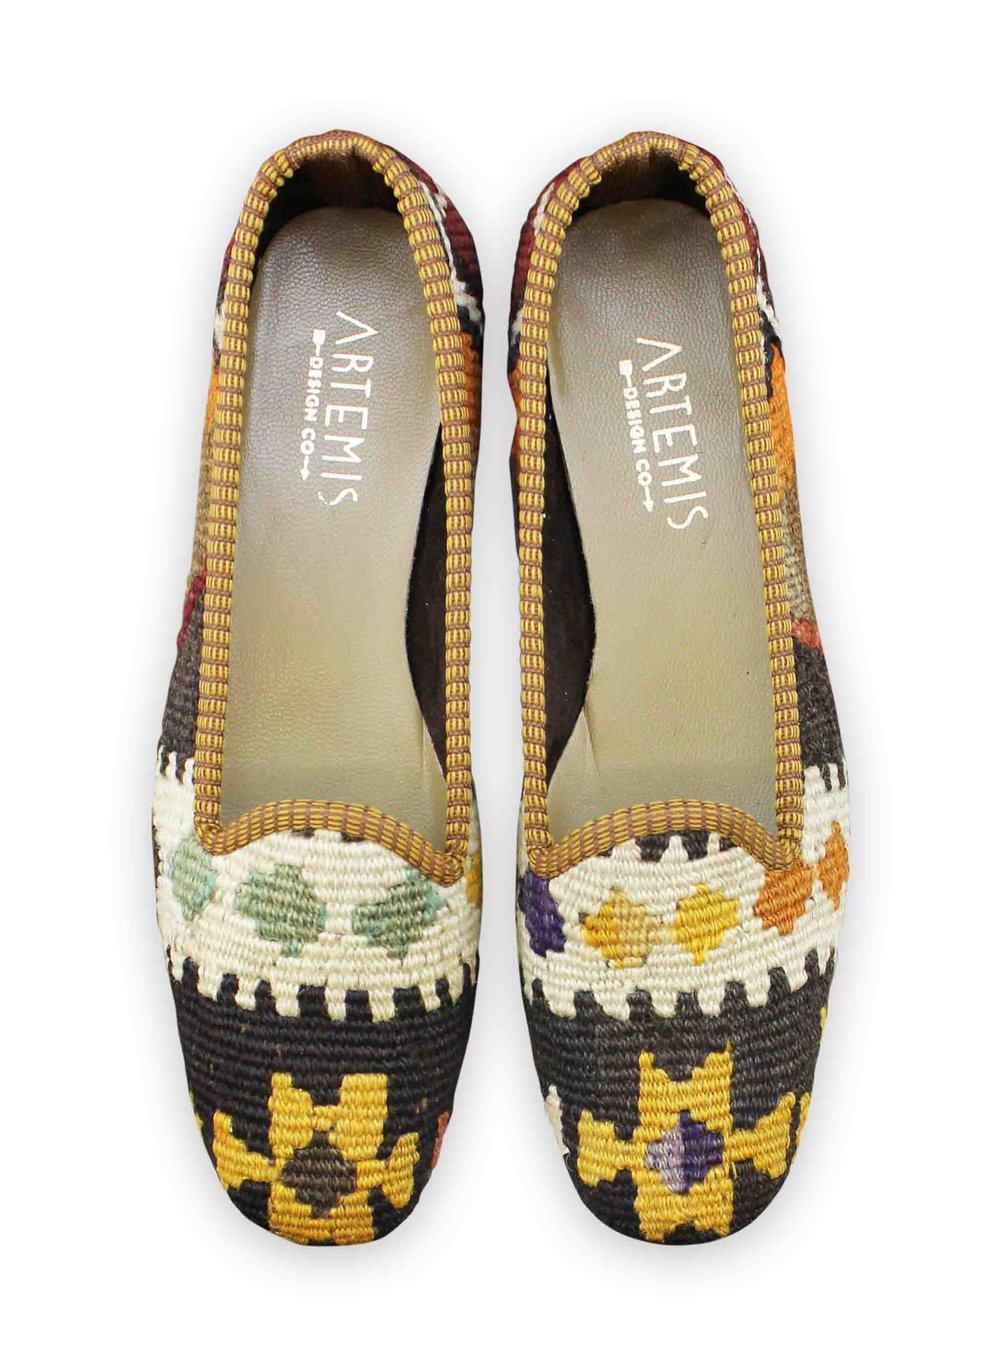 Archived Women's - Women's Kilim Loafers - Size 39 (US 9)